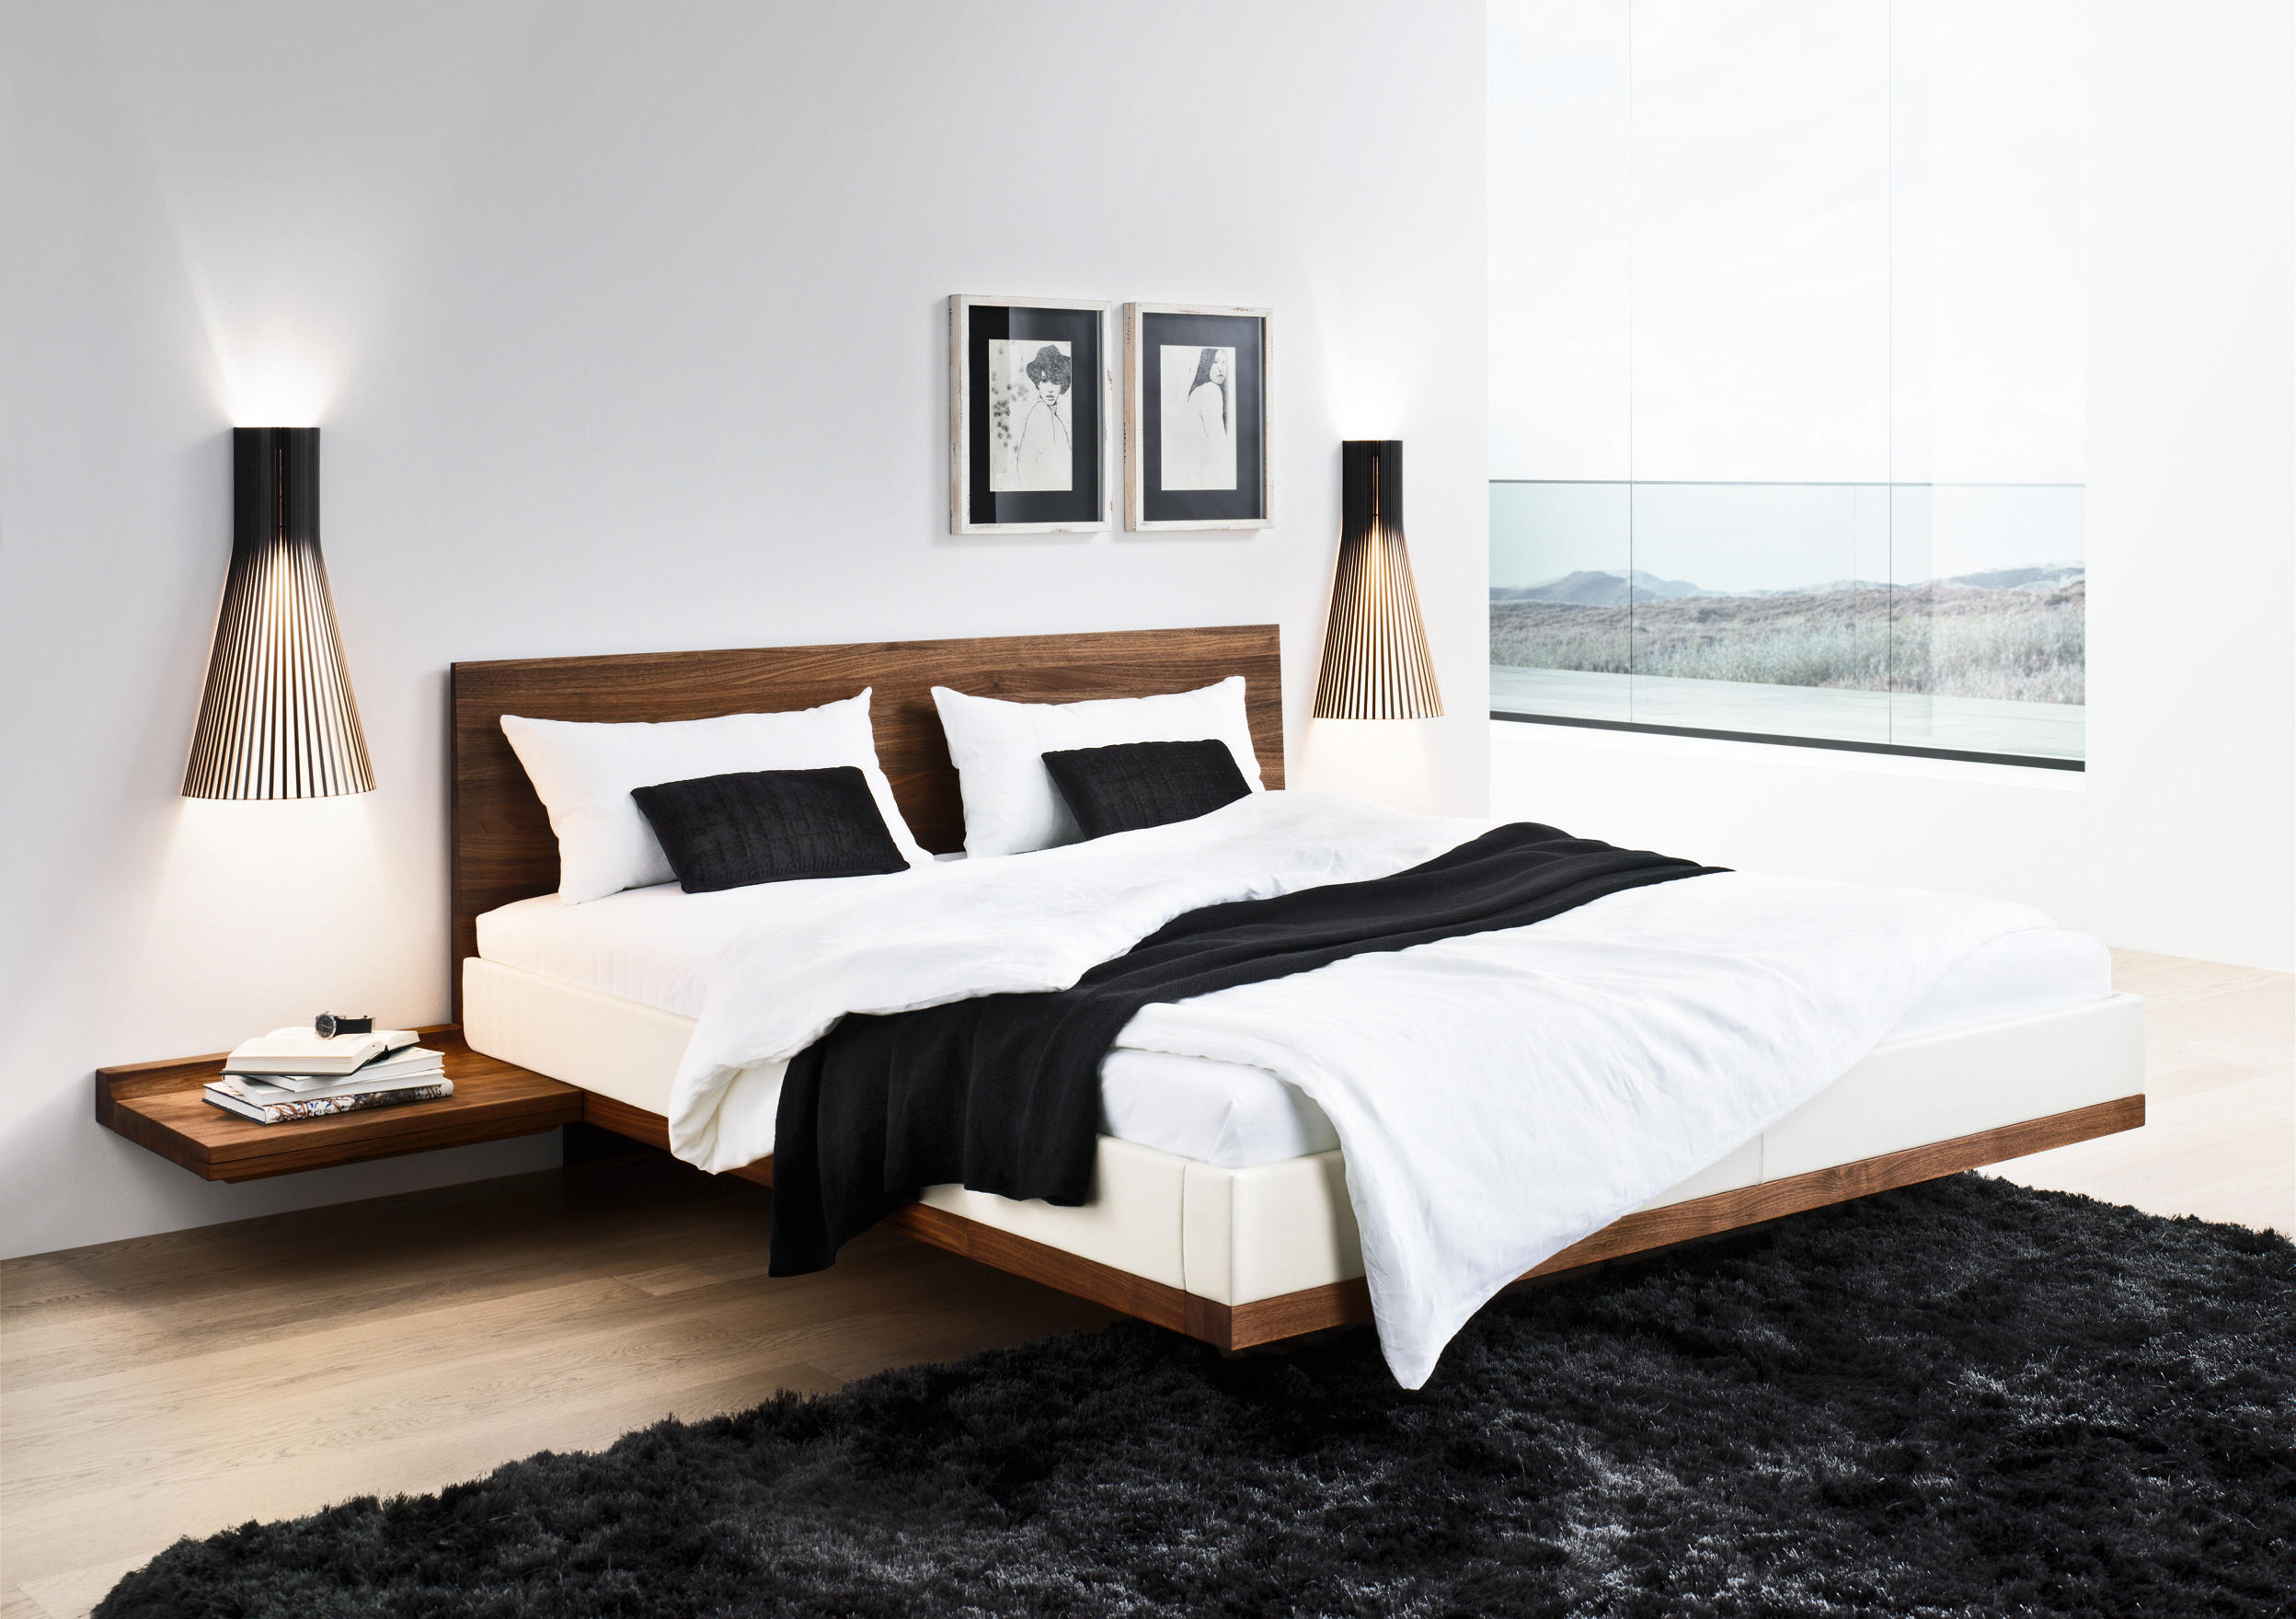 riletto bett doppelbetten von team 7 architonic. Black Bedroom Furniture Sets. Home Design Ideas